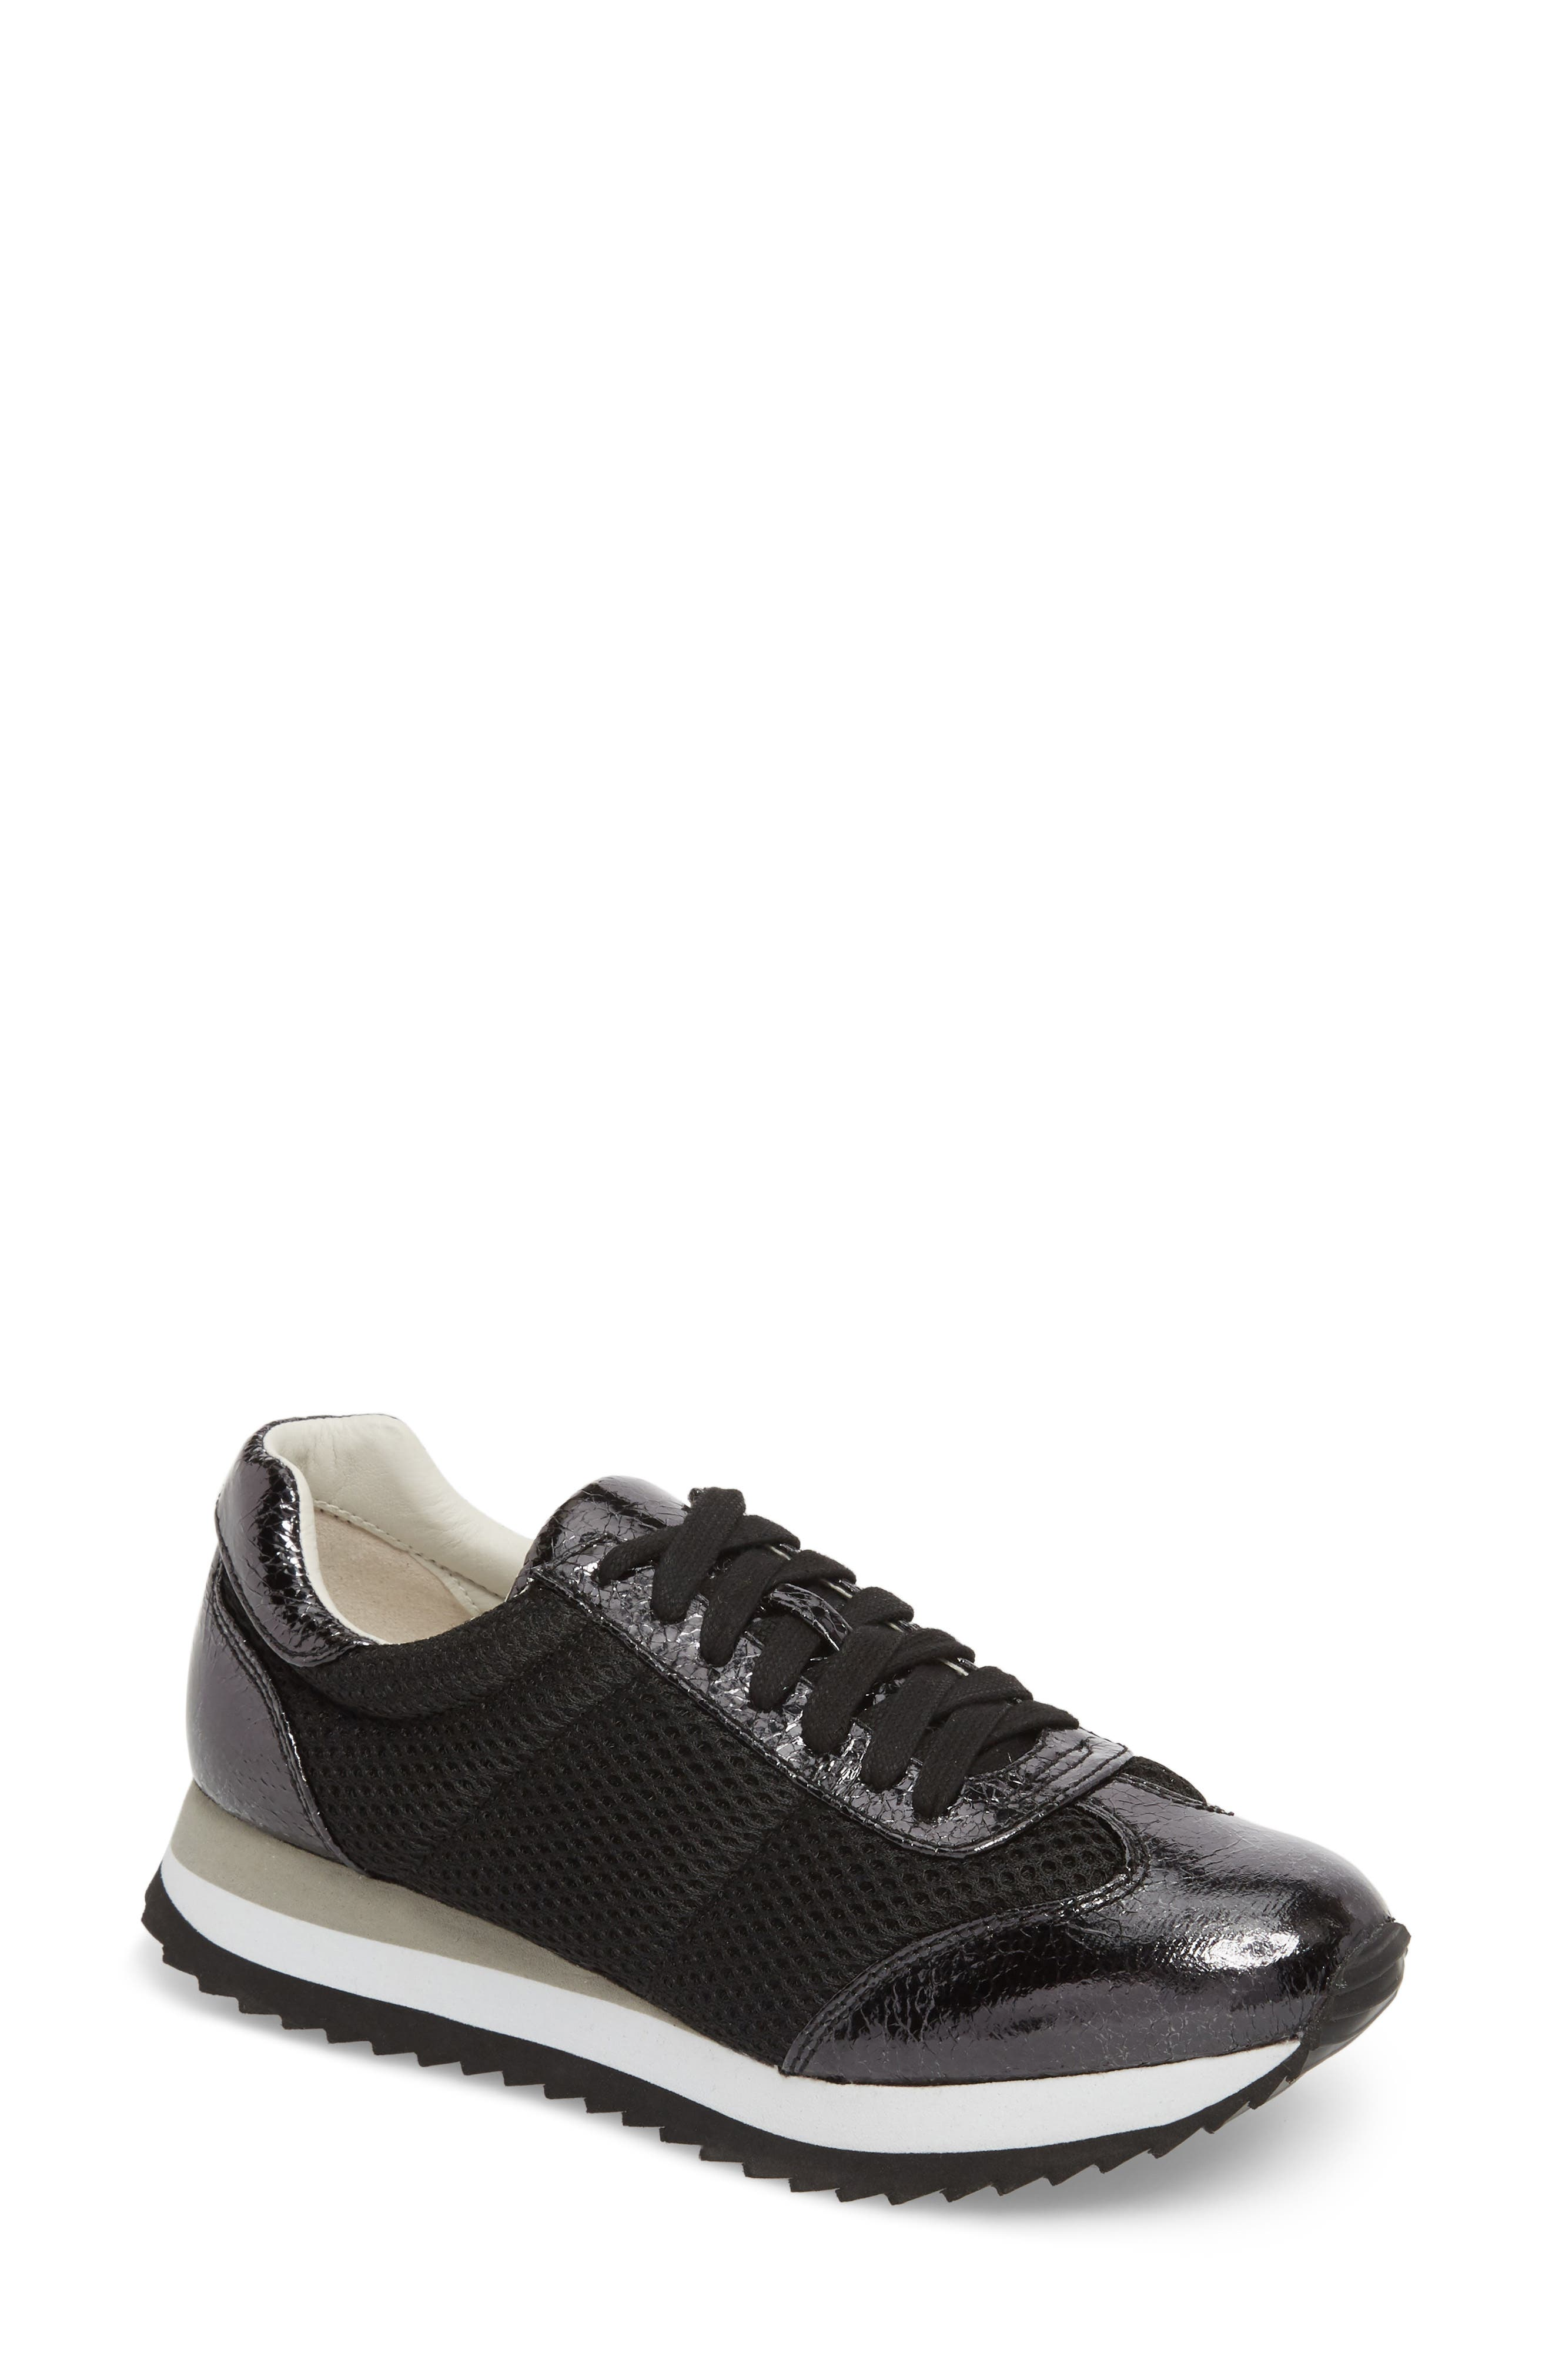 JANE AND THE SHOE Jaclyn Mesh Sneaker, Main, color, 001